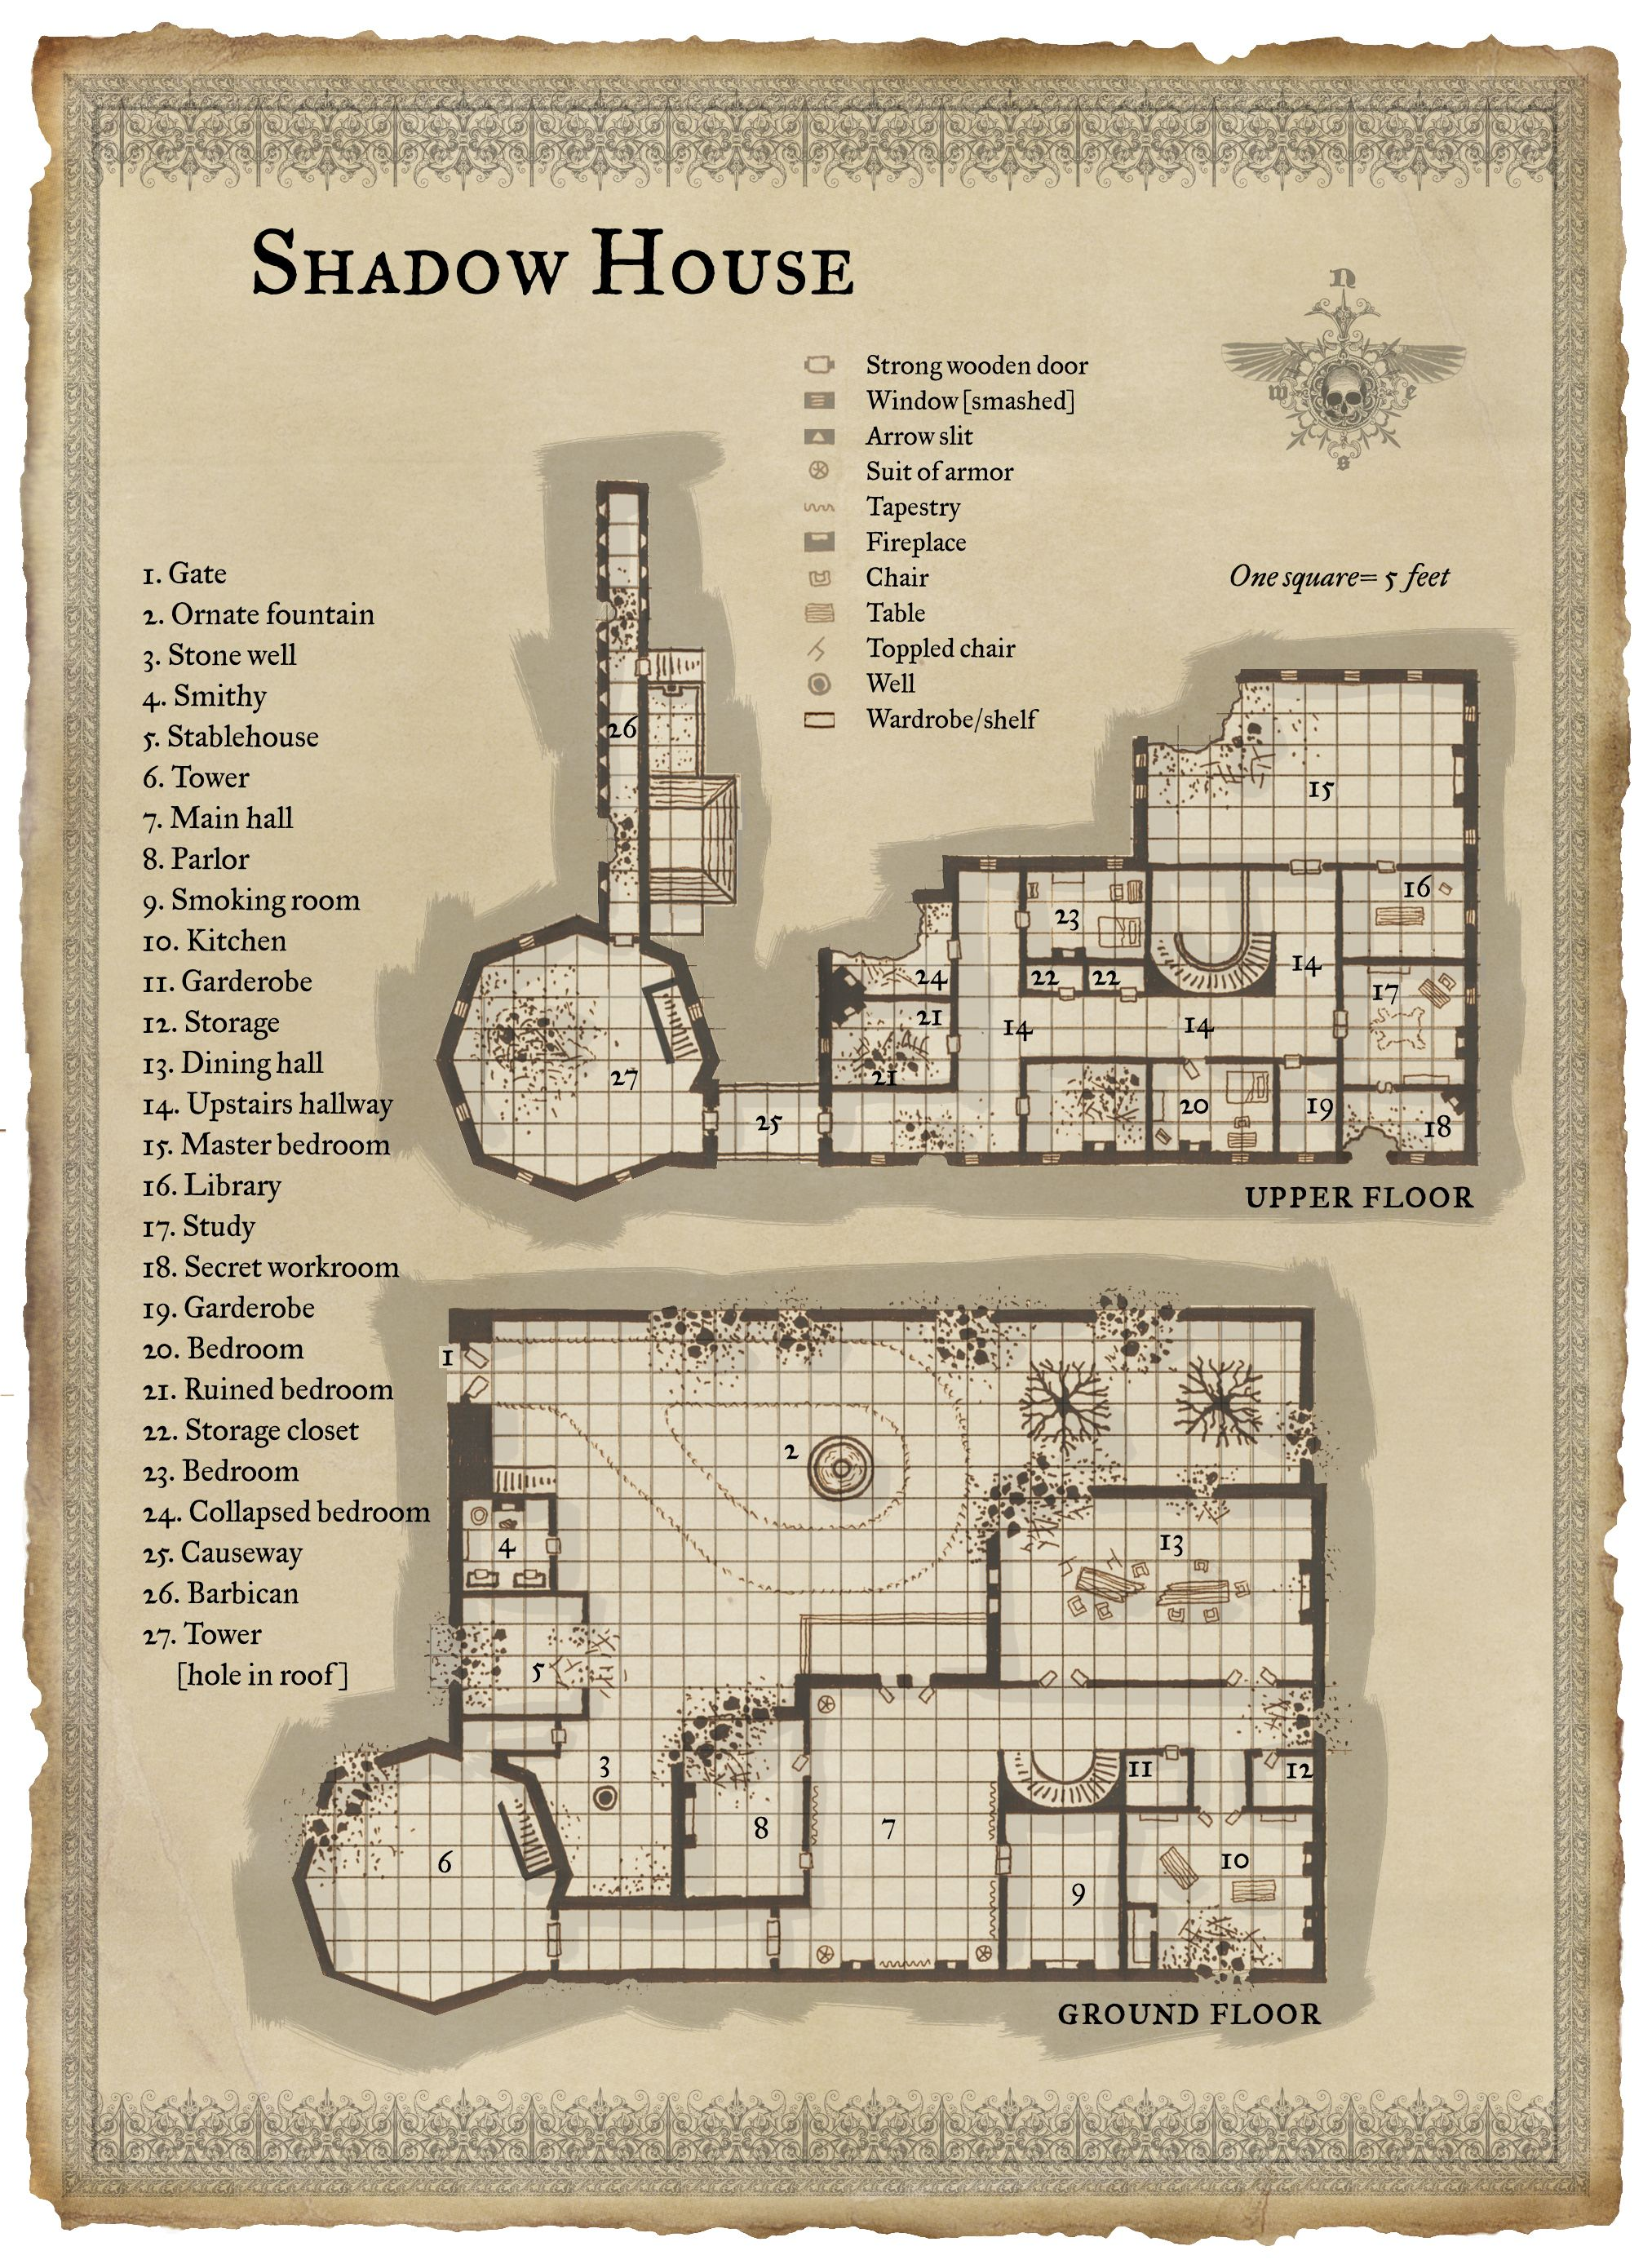 Pin by Draqoun Maguese on D&D Cartography | Pinterest | RPG, Fantasy ...